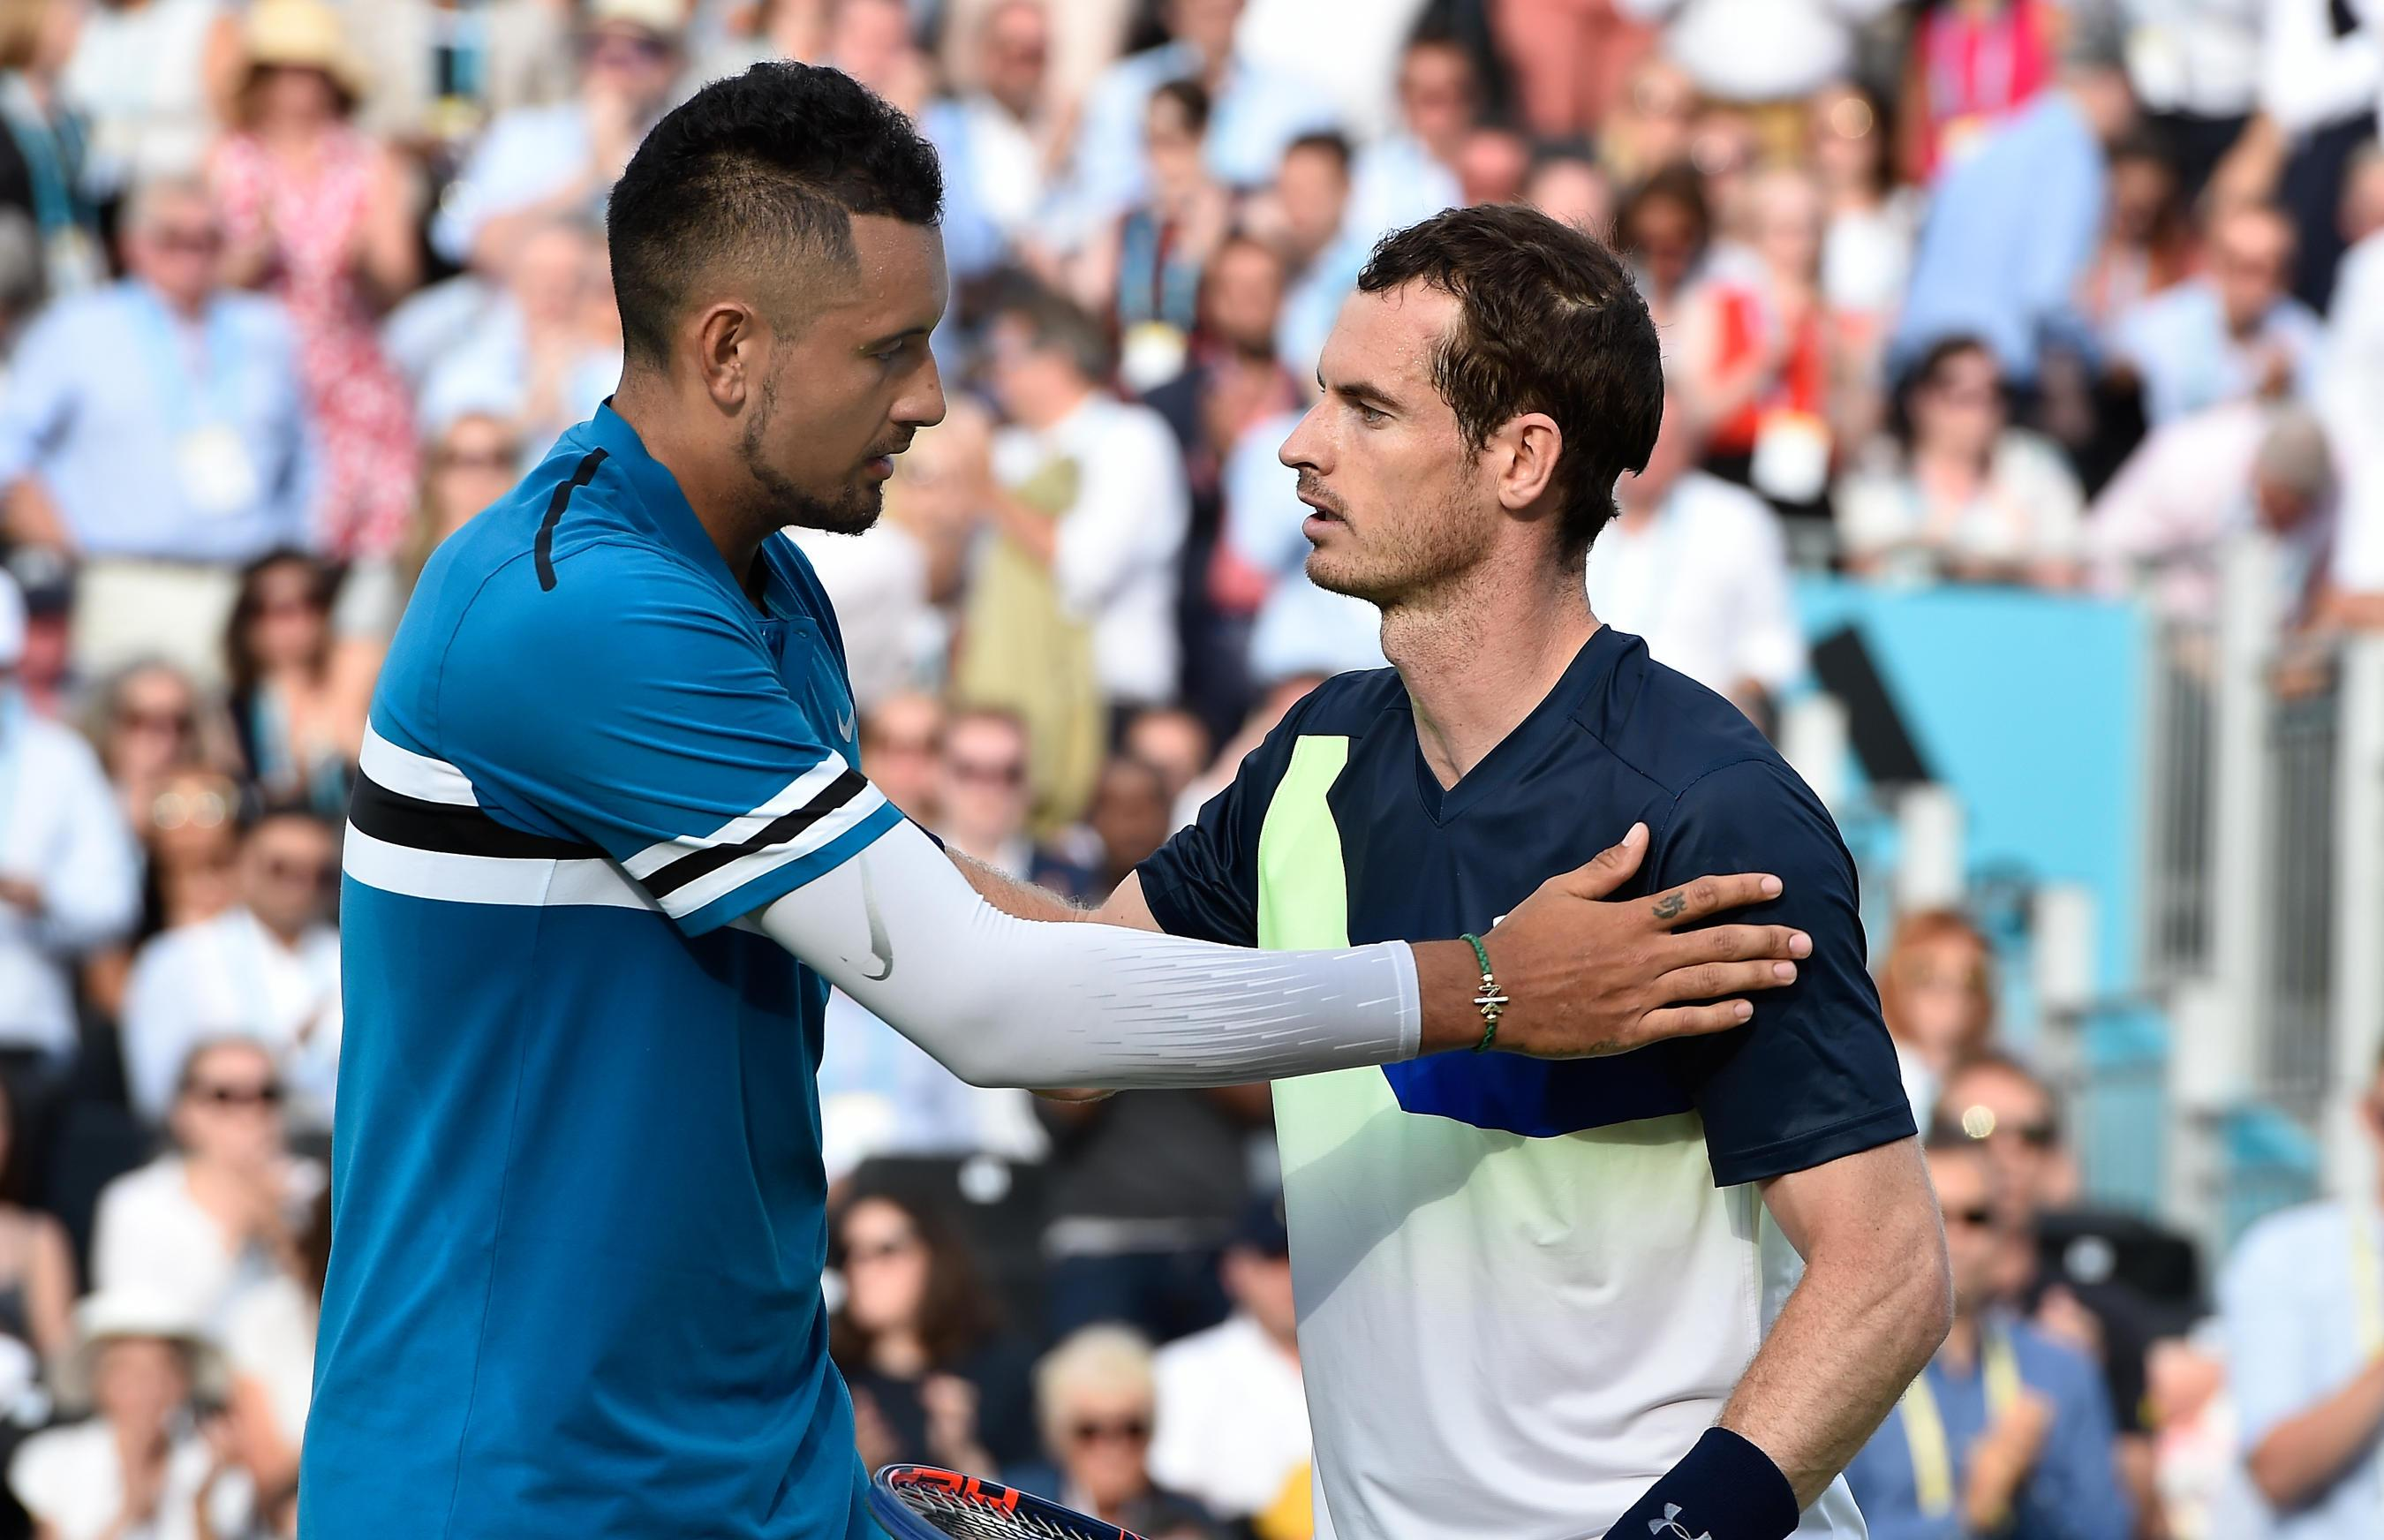 Andy Murray was beaten in three sets by Nick Kyrgios at Queen's